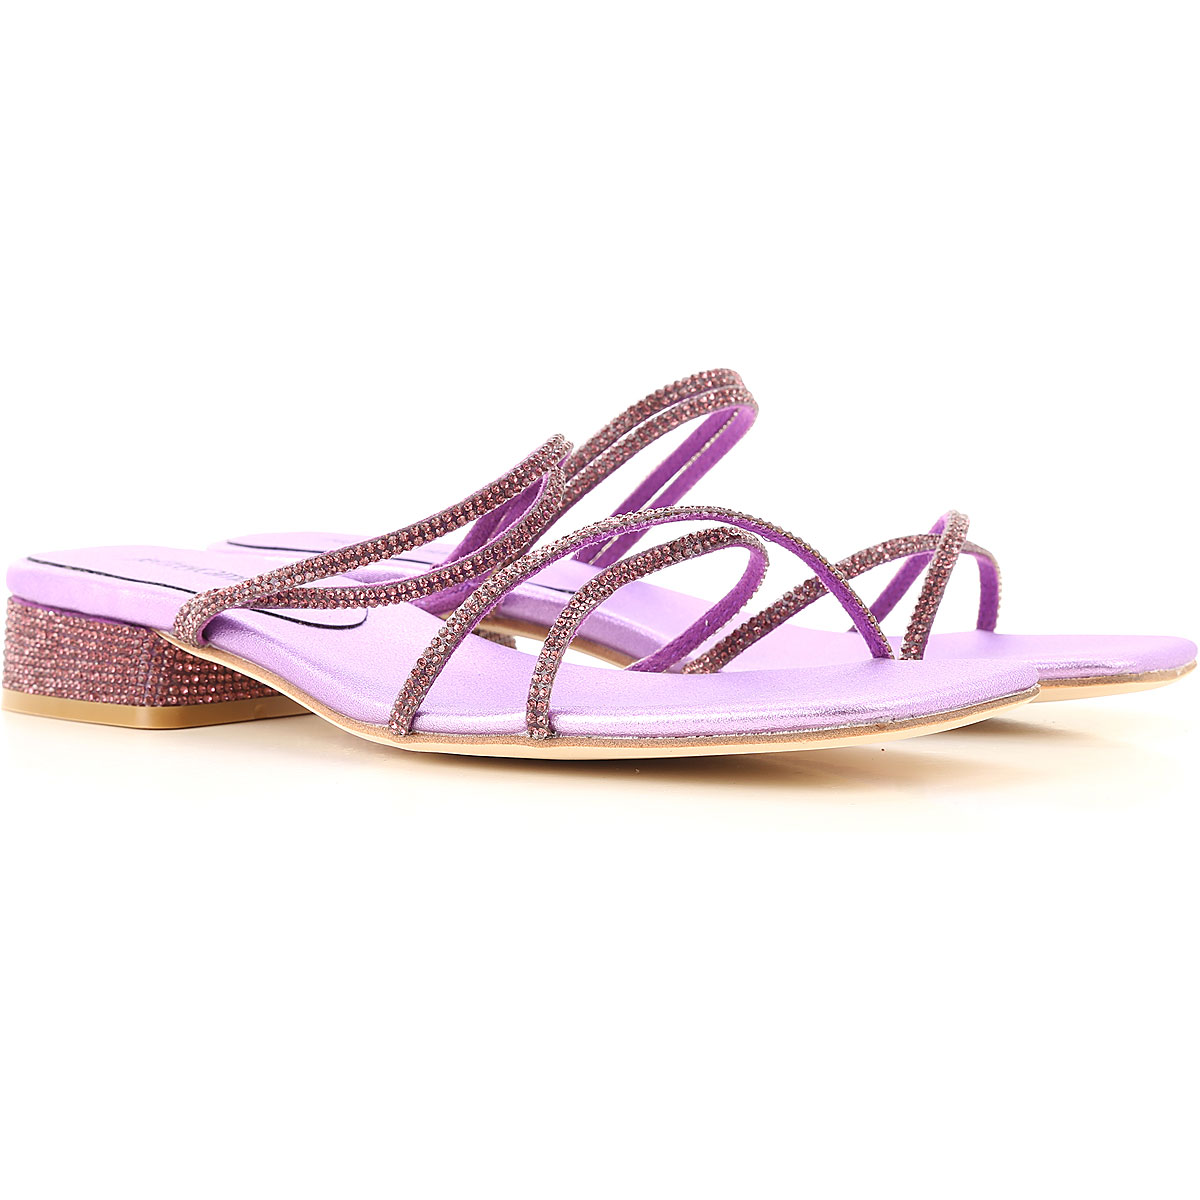 Jeffrey Campbell Sandals for Women On Sale, Purple, Fabric, 2019, 6 7 8 9